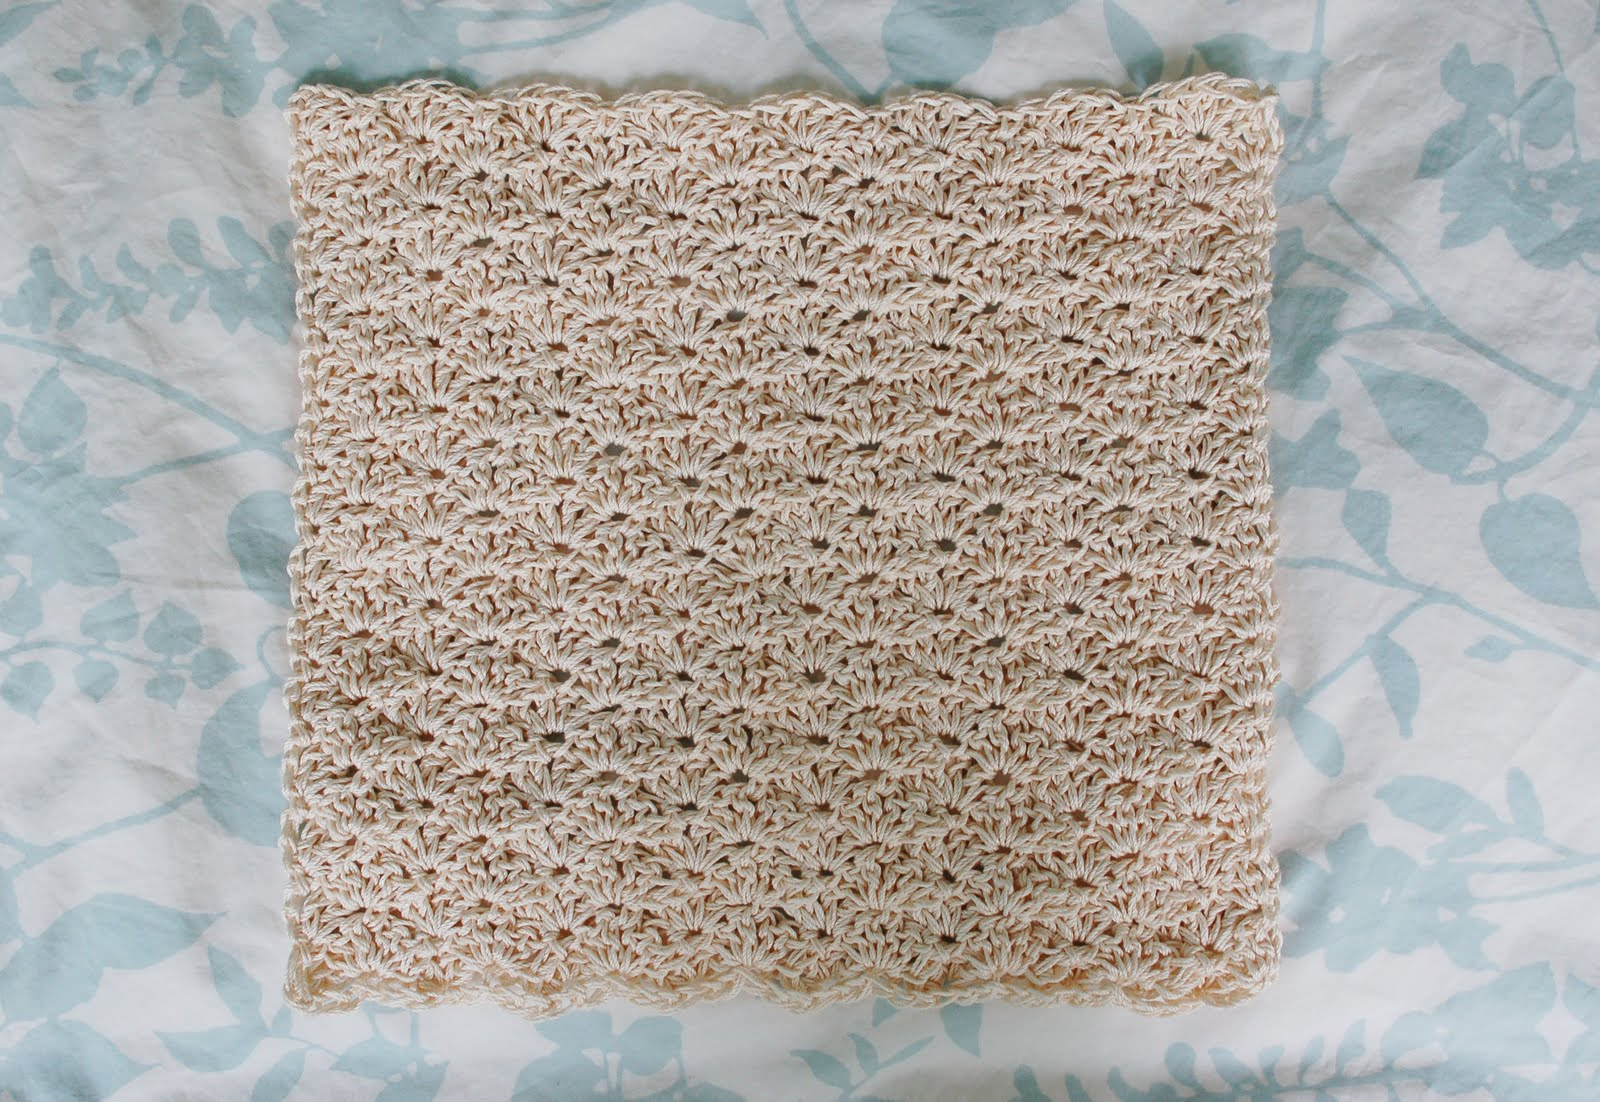 Free Crochet Patterns For Cotton Thread : COTTON CROCHET FREE PATTERN THREAD Crochet Patterns